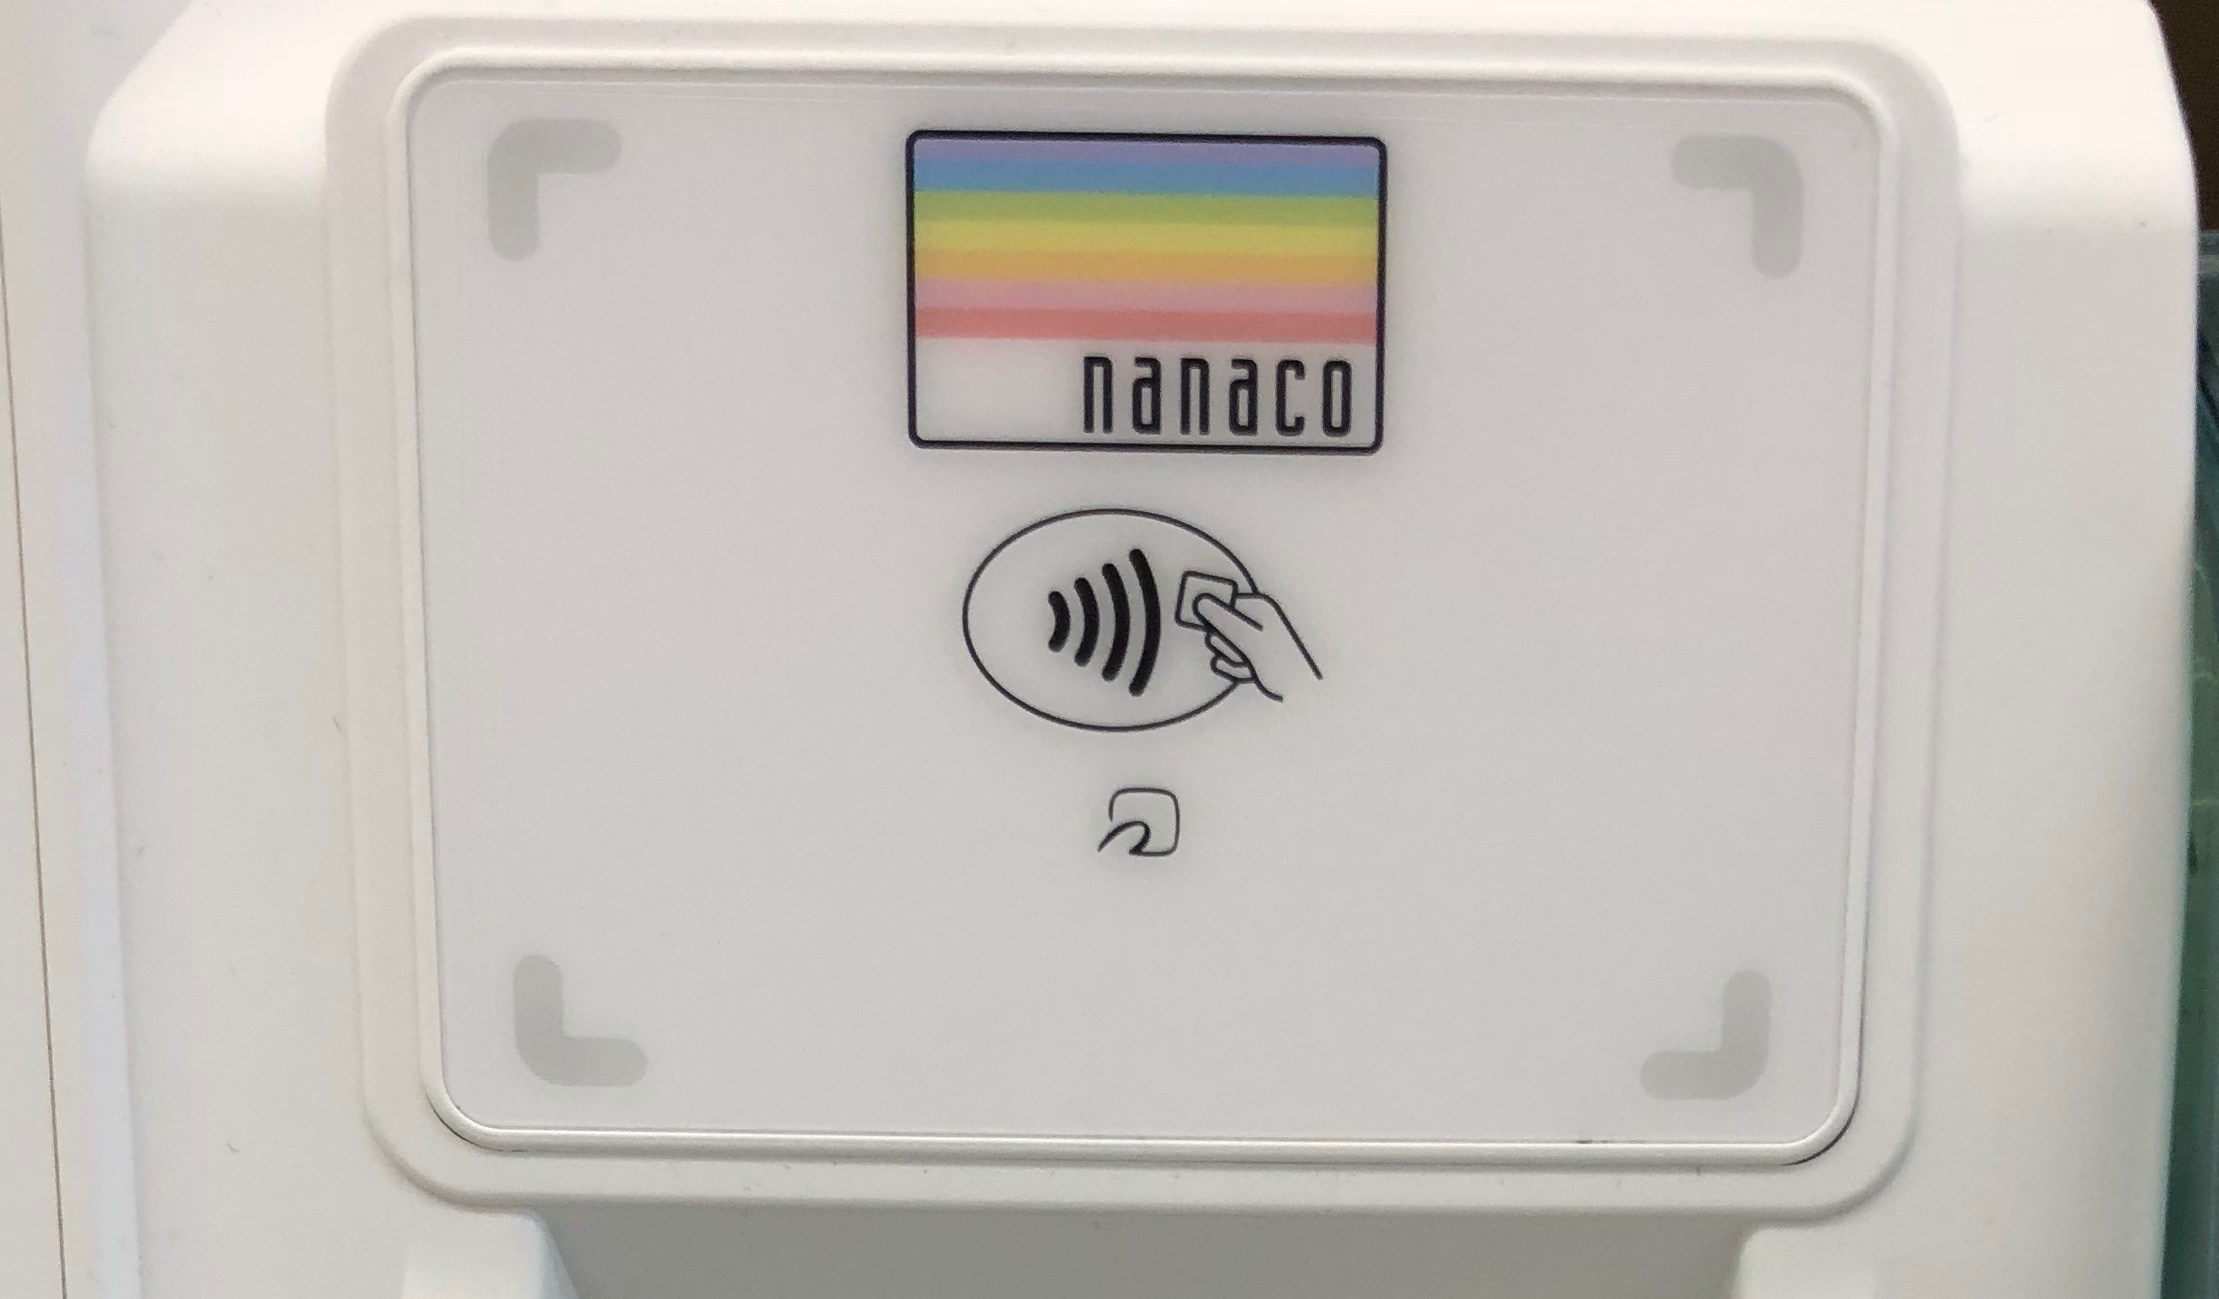 The new 7-Eleven POS priorities: big 7-Eleven Nanaco card NFC logo on top, smaller EMV in the middle and a tiny FeliCa logo on the bottom.